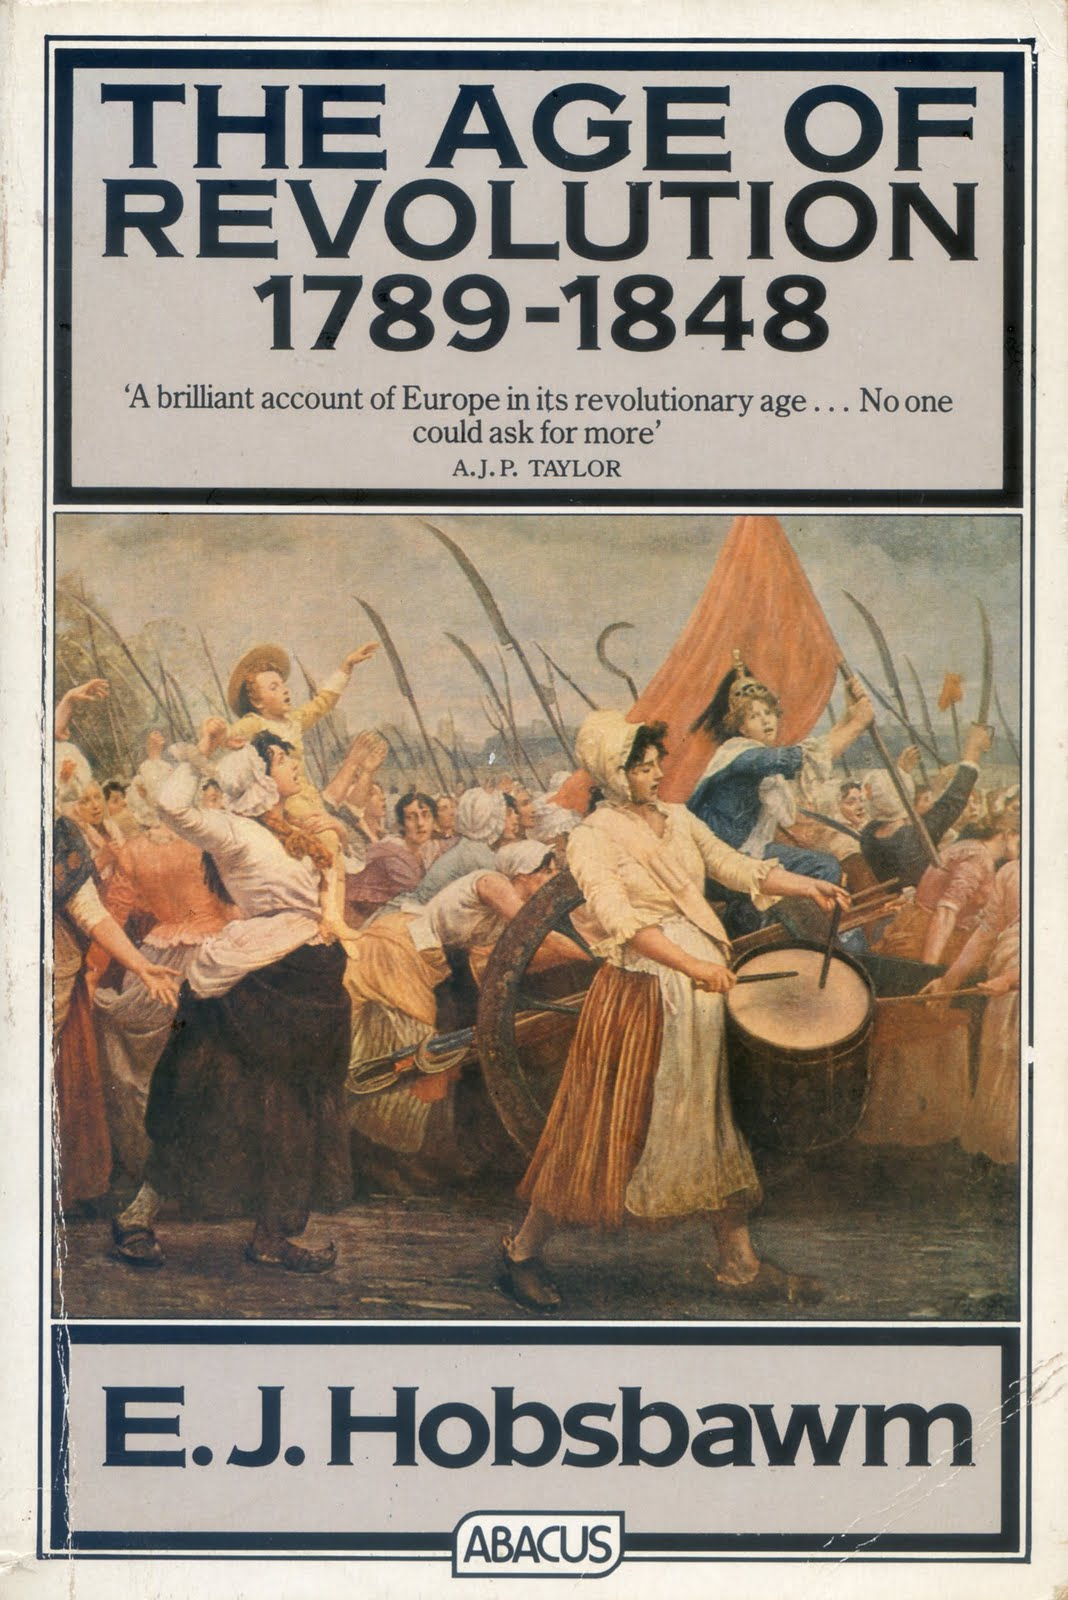 the age of revolutions This course will introduce you to the history of the age of revolutions in the atlantic world from 1776 to 1848 you will learn about the revolutionary upheavals that took place in the americas and europe during this period.